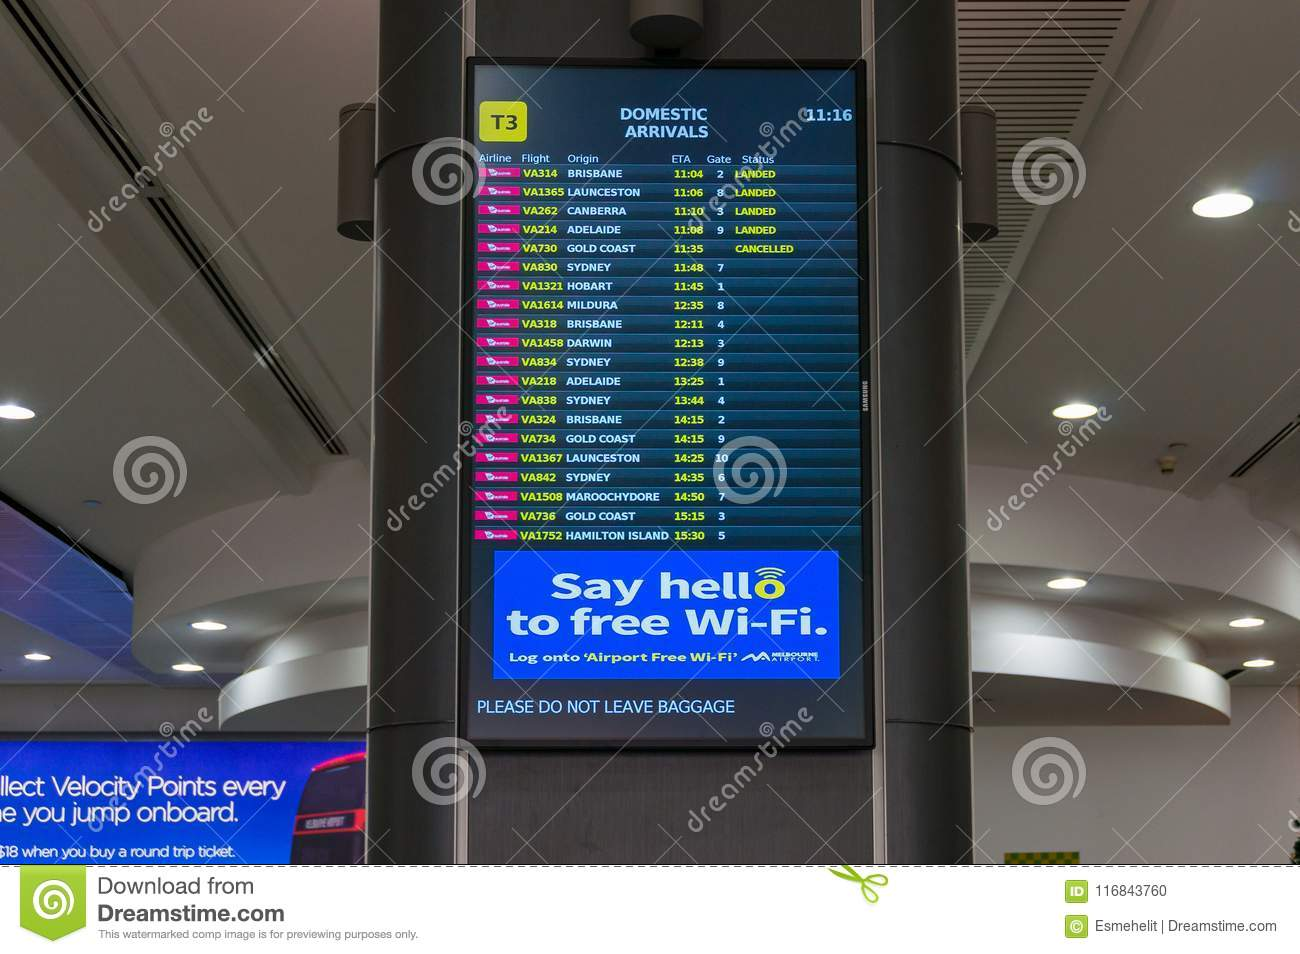 Qantas Airline Domestic Arrivals Information Board In